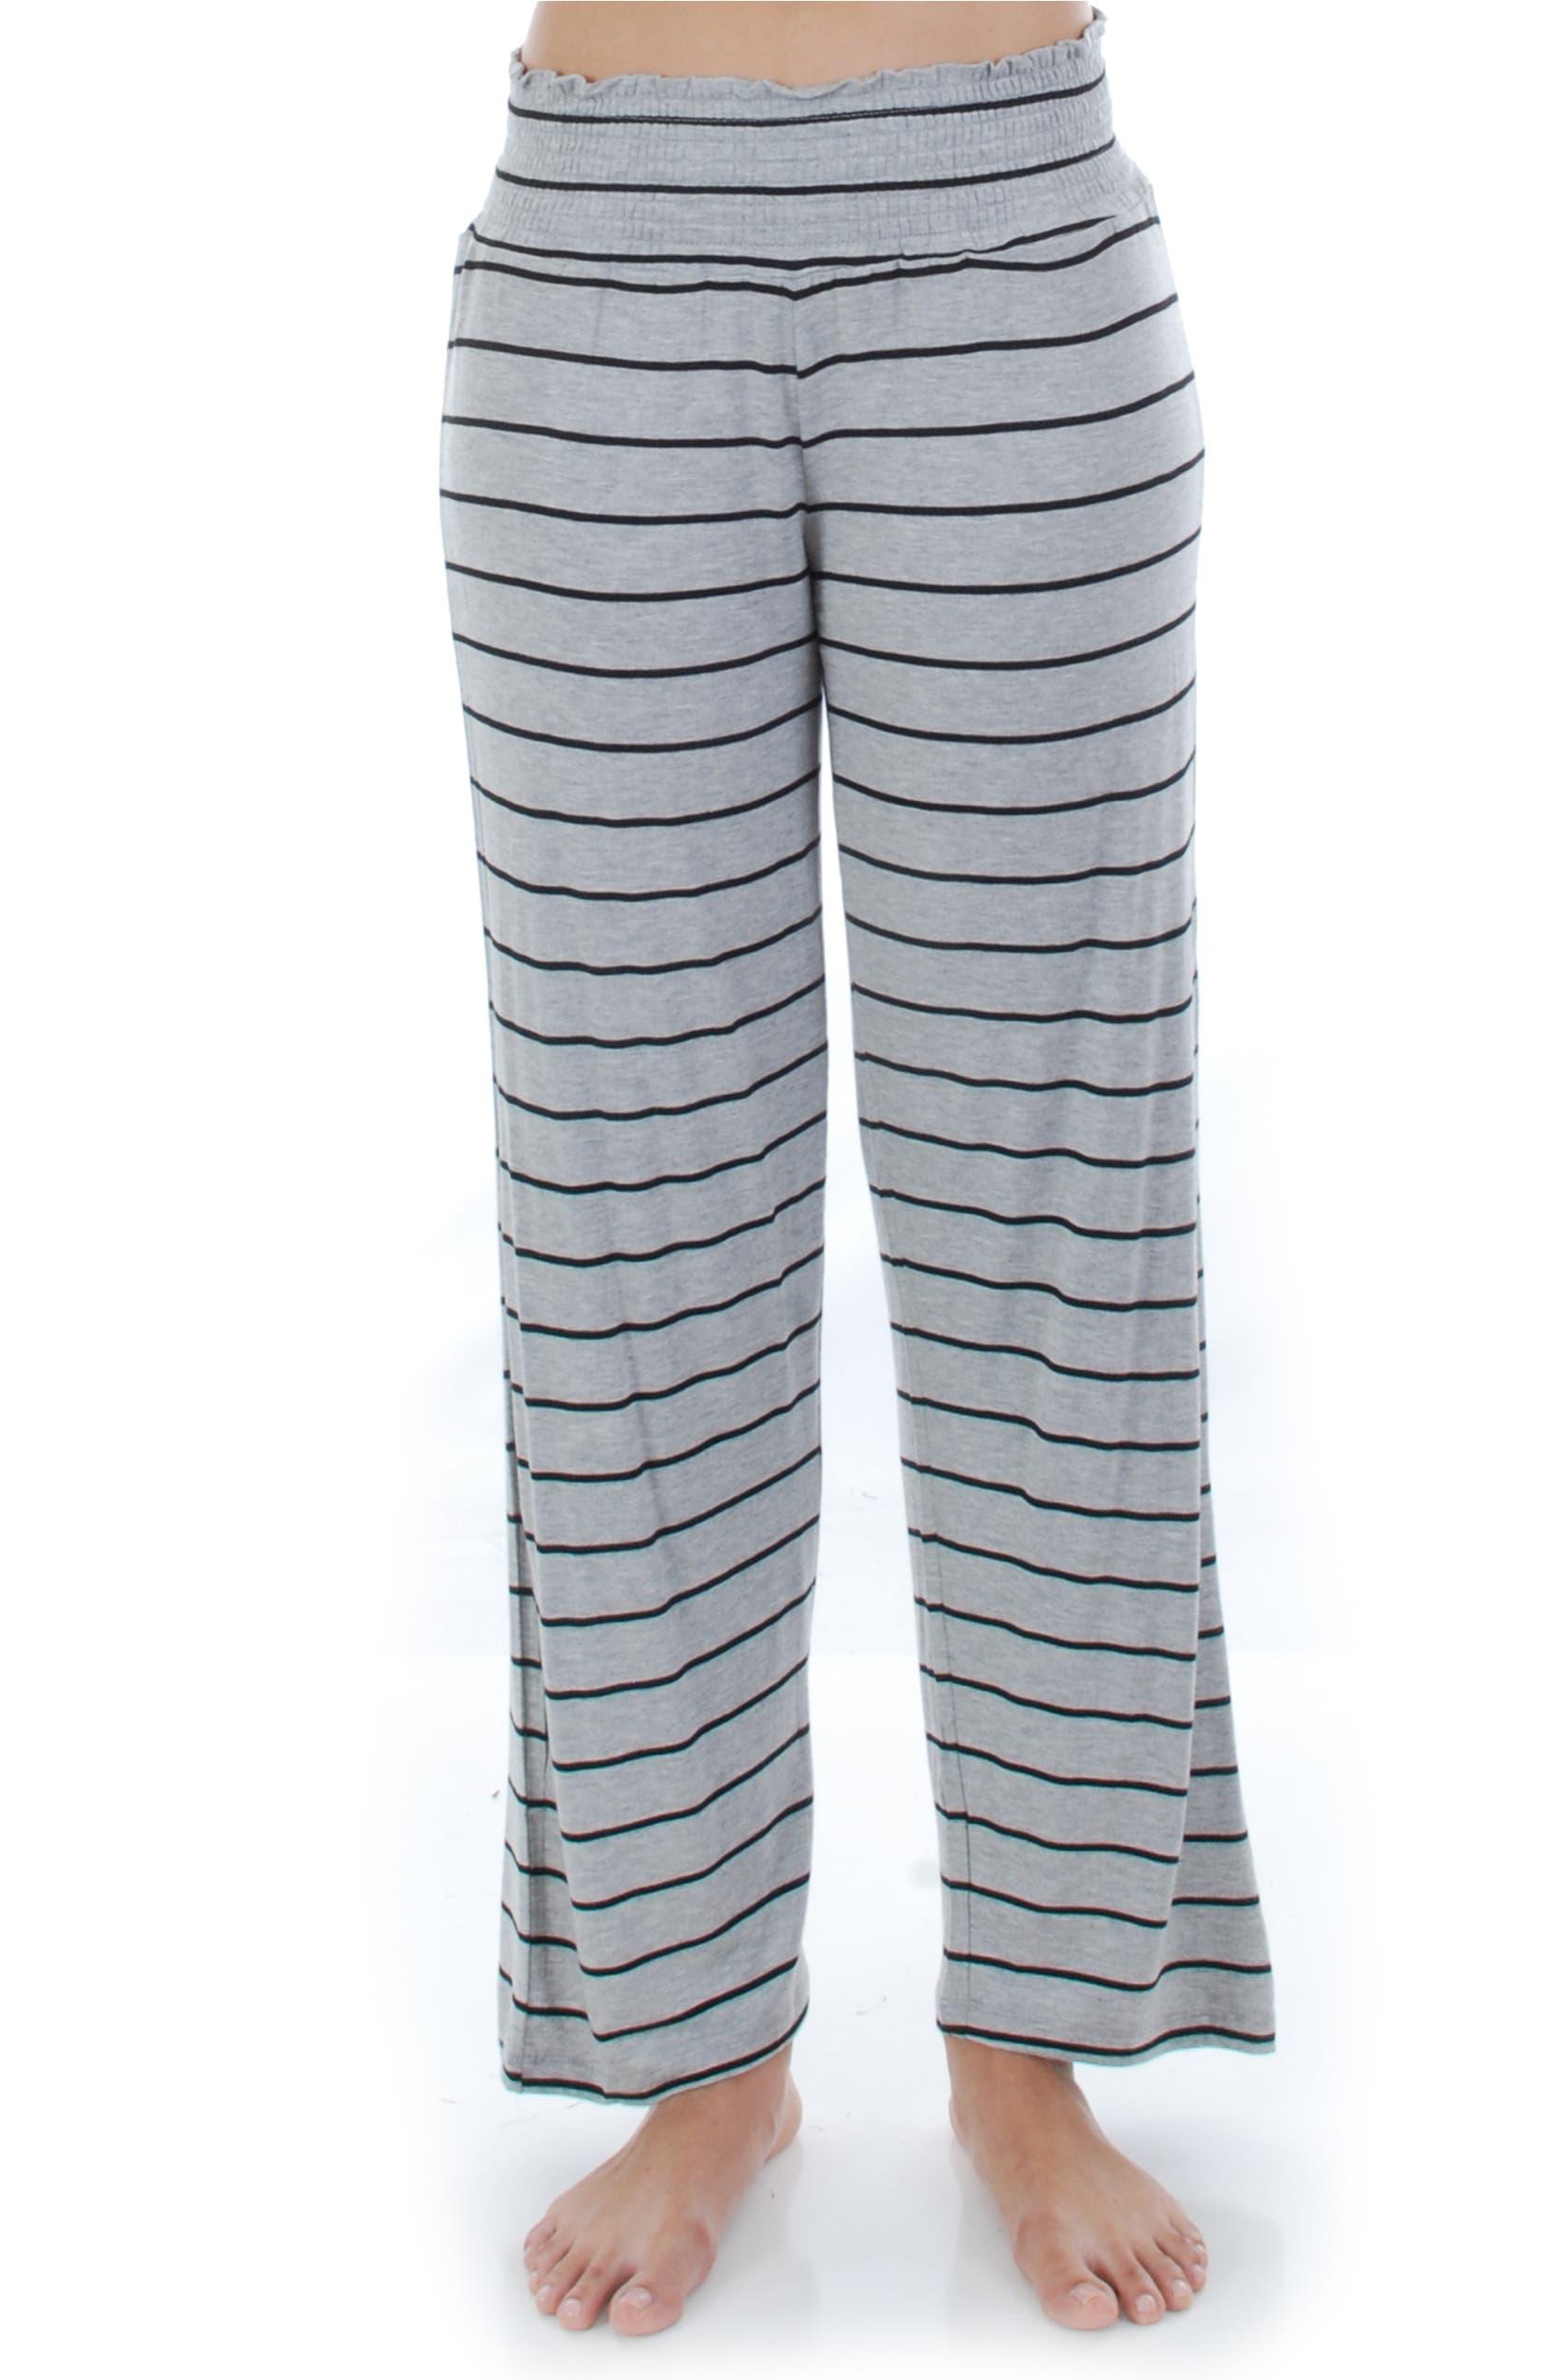 a45745e4ab Everly Grey Roxanne - During   After 5-Piece Maternity Sleepwear Set ...